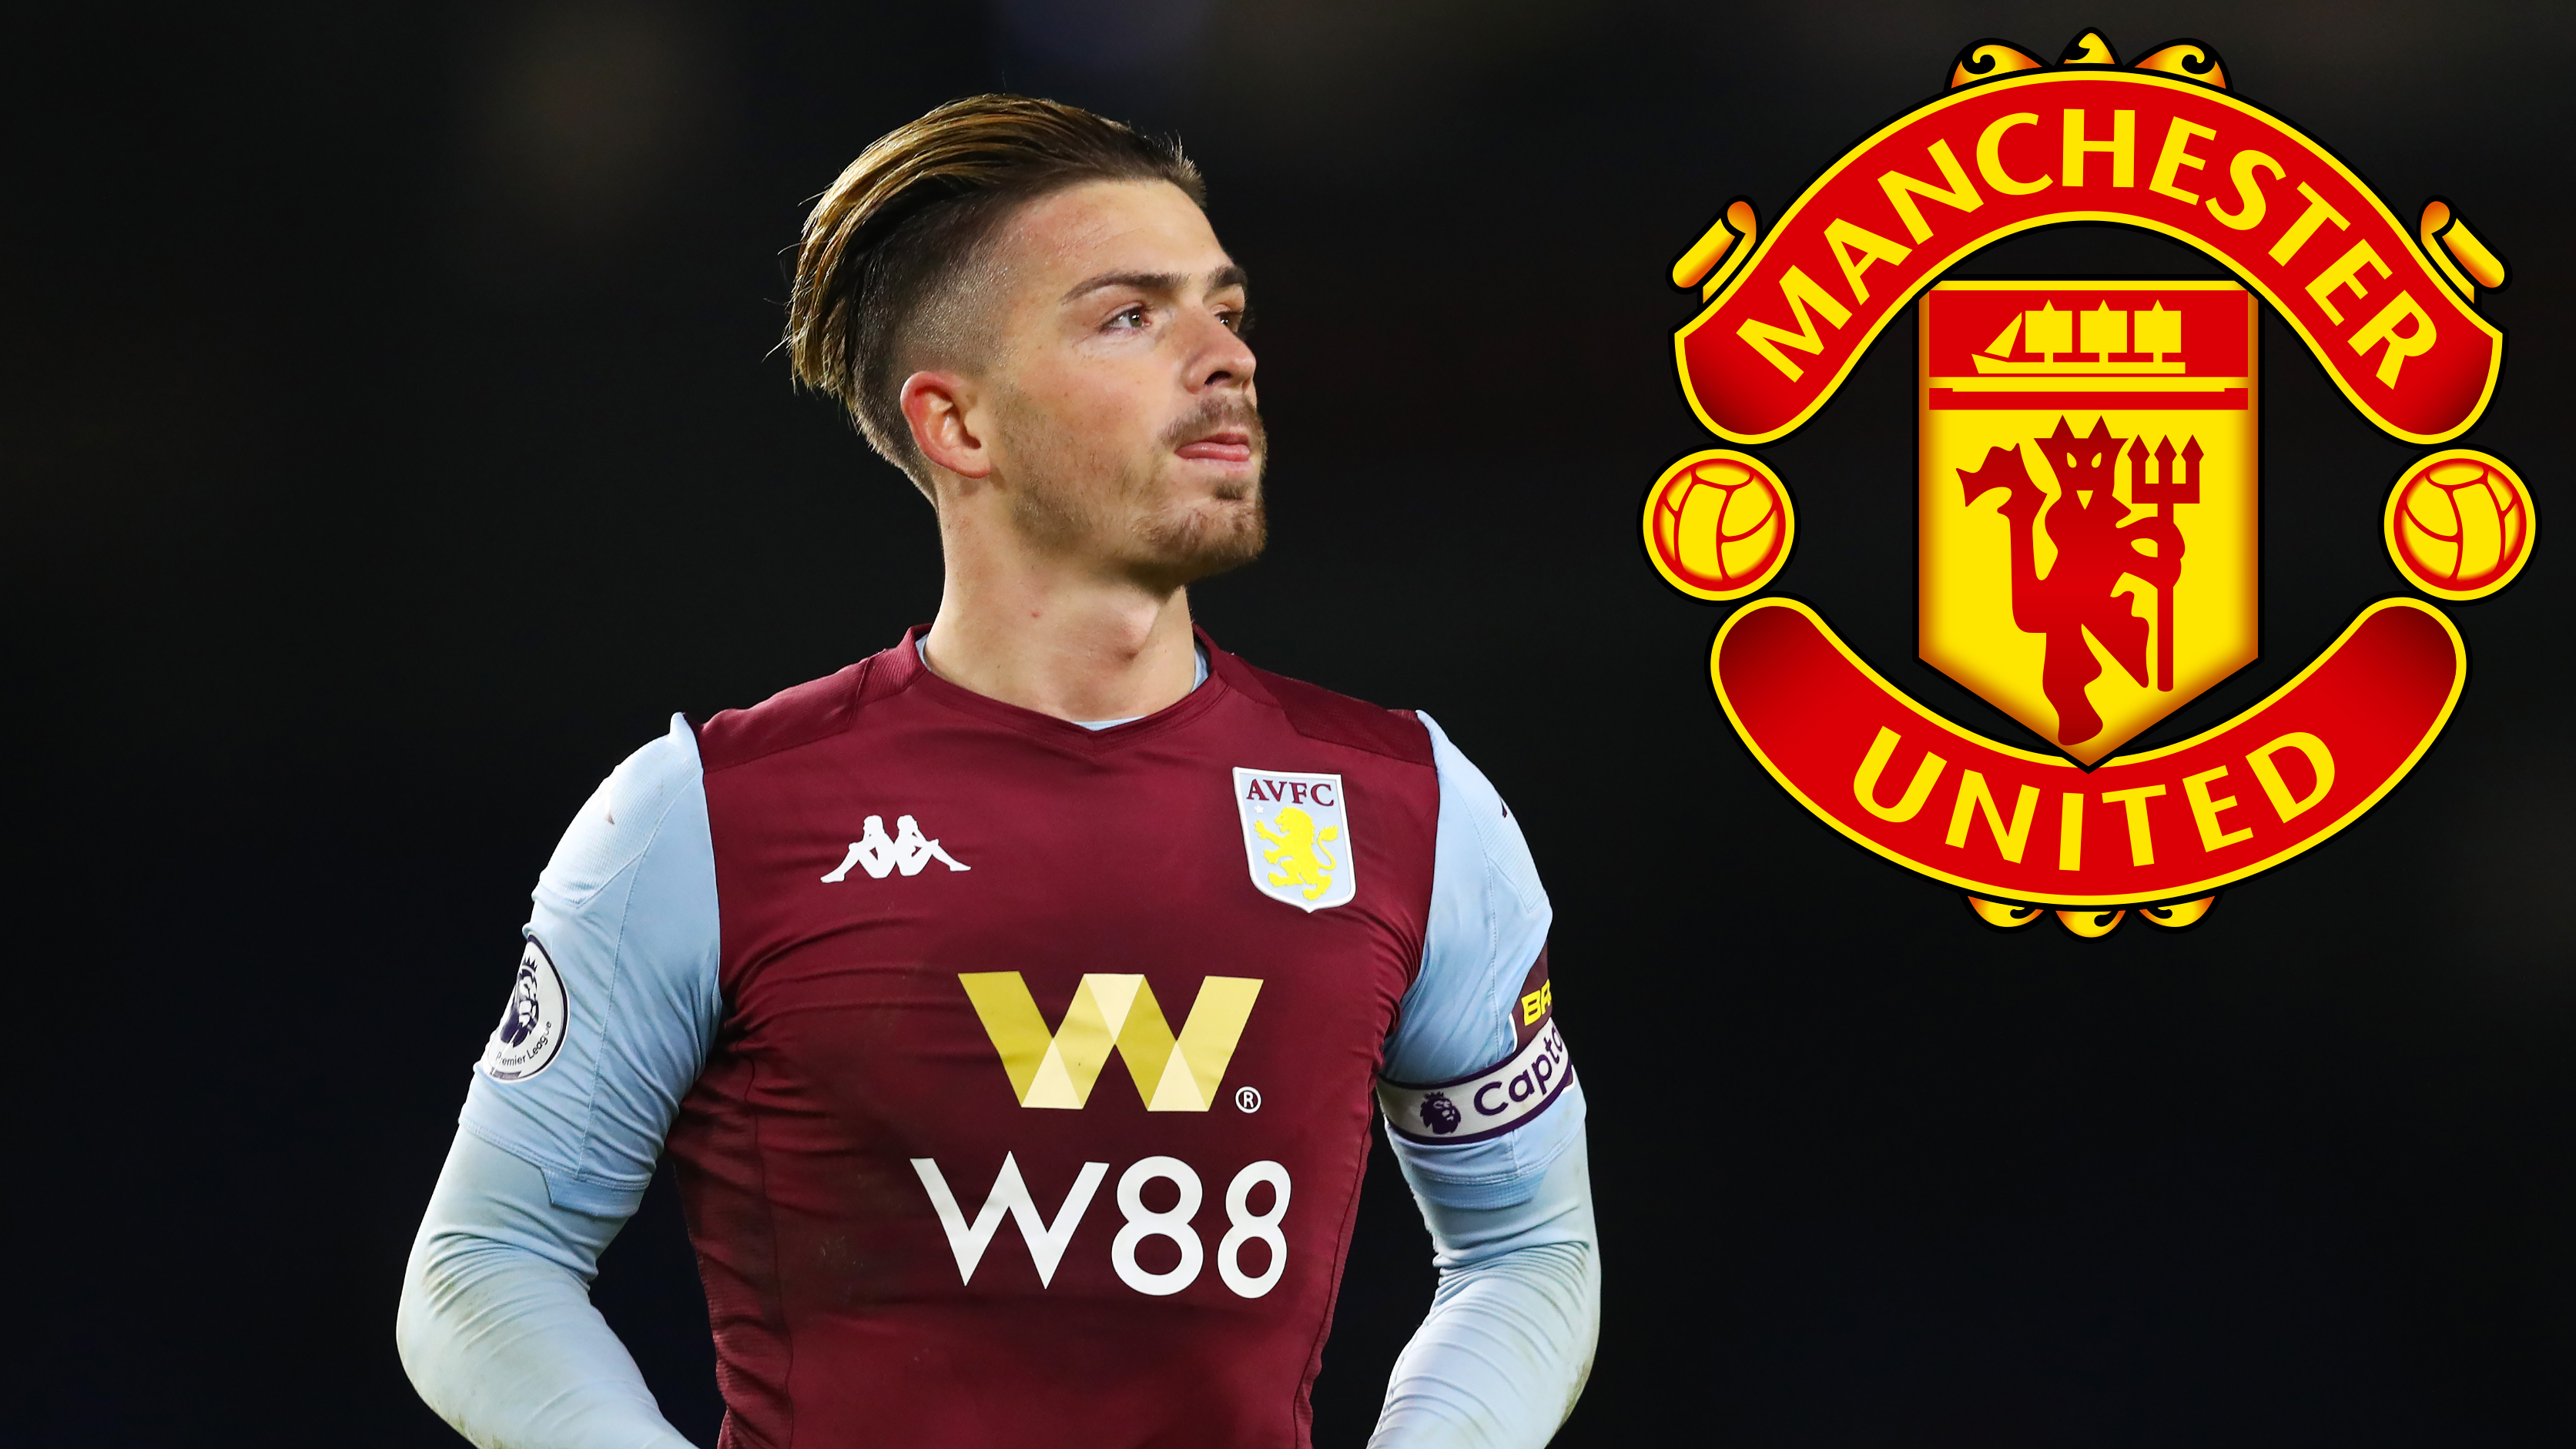 Grealish would do very well at Man Utd' - Aston Villa star tipped ...